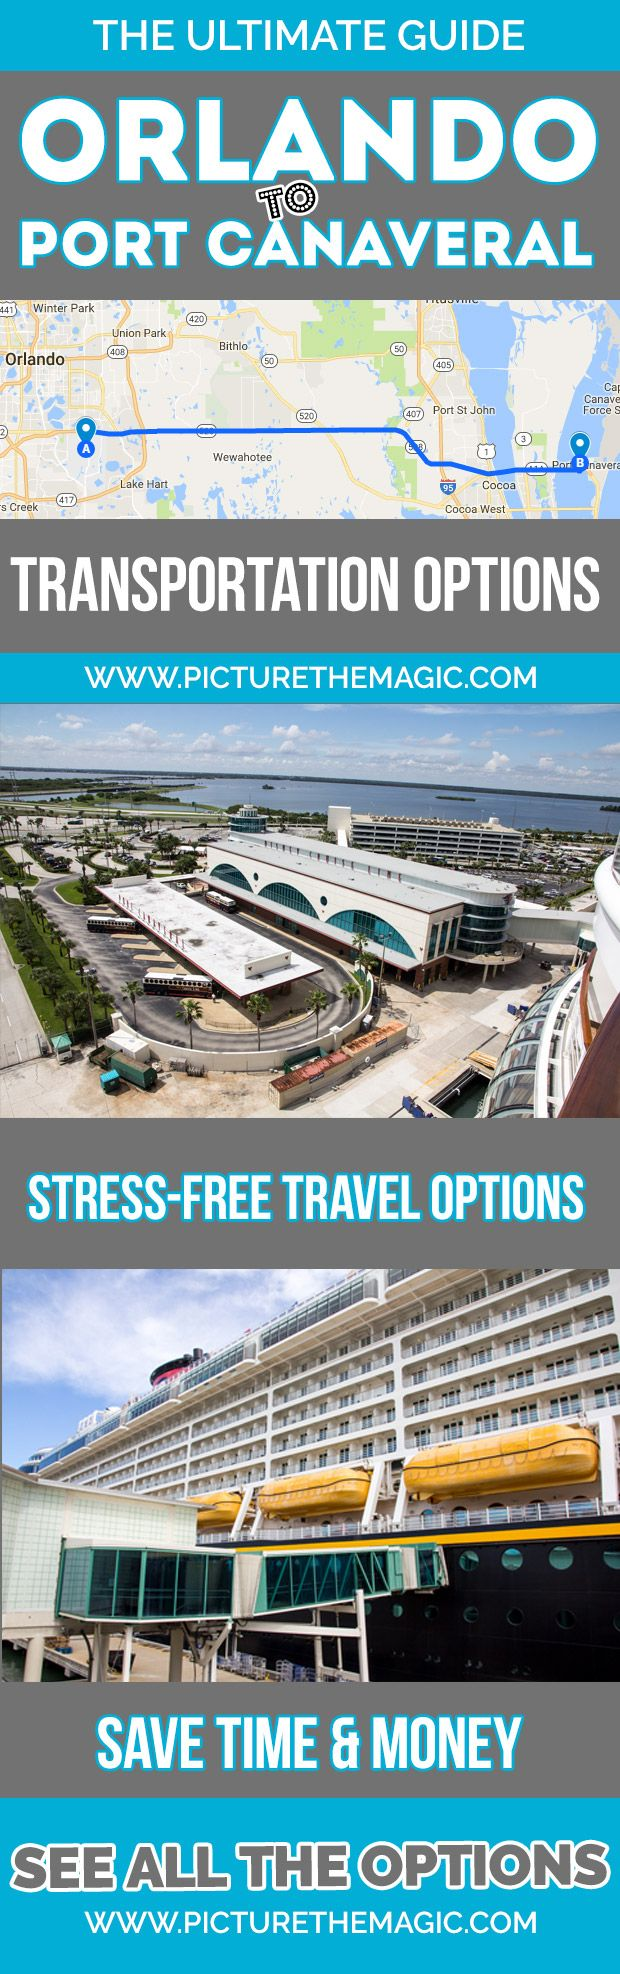 Orlando to port canaveral transportation options the 2017 guide